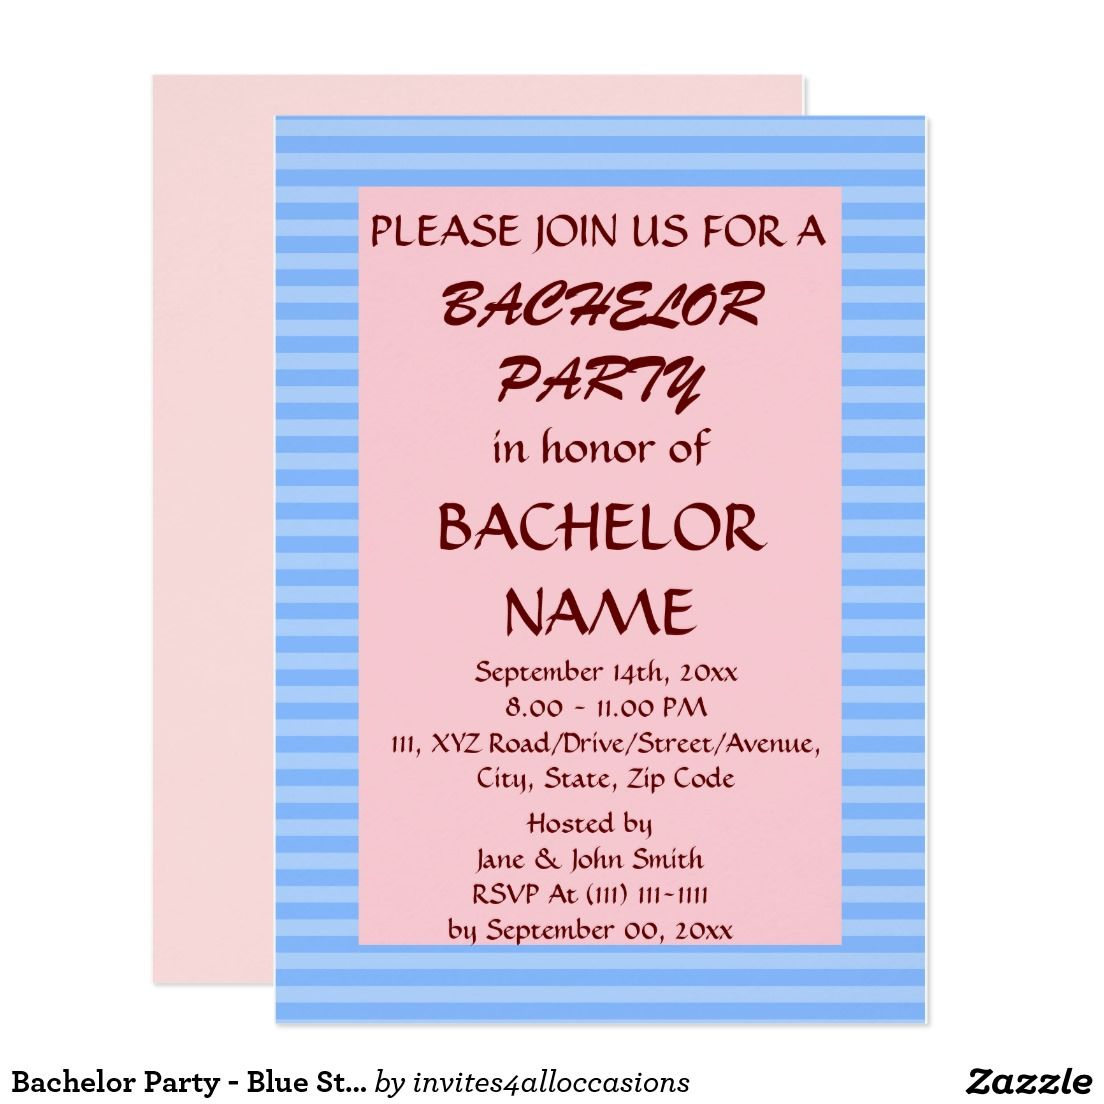 Bachelor party blue stripes pink background card bachelor bachelor party blue stripes pink background card monicamarmolfo Choice Image